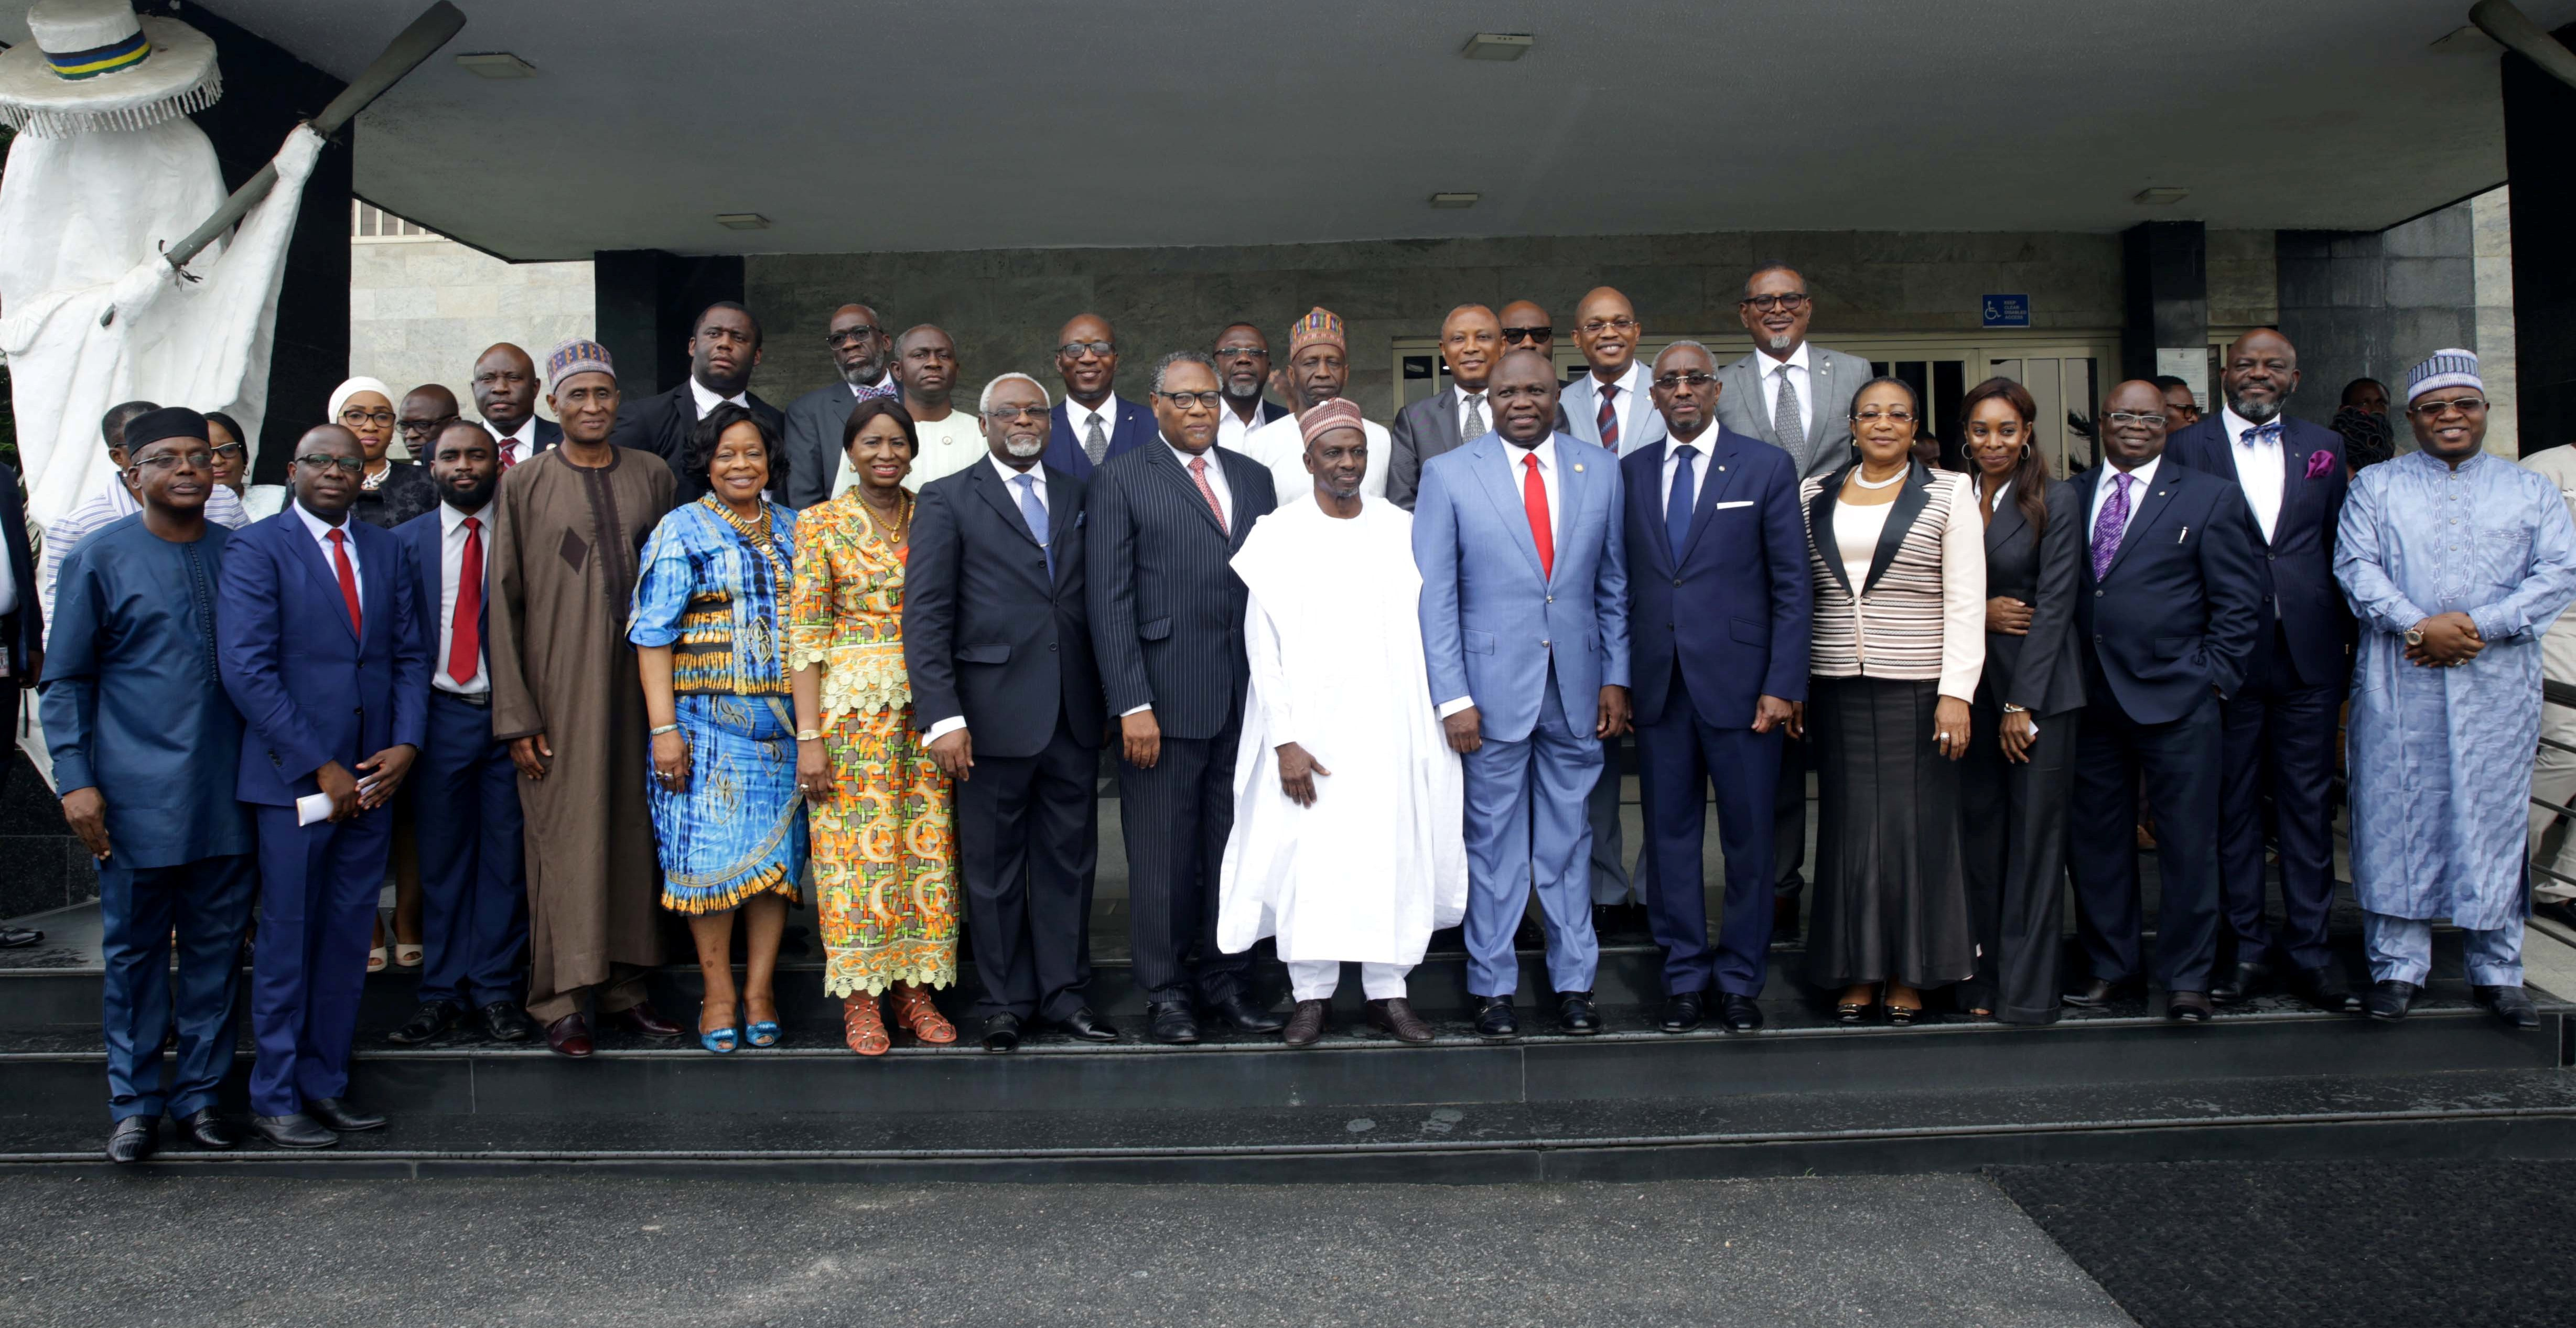 Lagos State Governor, Mr. Akinwunmi Ambode (middle), in a group photograph with the President, Institute of Directors (IoD), Alhaji Ahmed Rufai Mohammed and members of the Governing Council during a courtesy visit to the Governor, at Lagos House, Alausa, Ikeja, on Tuesday, September 11, 2018.